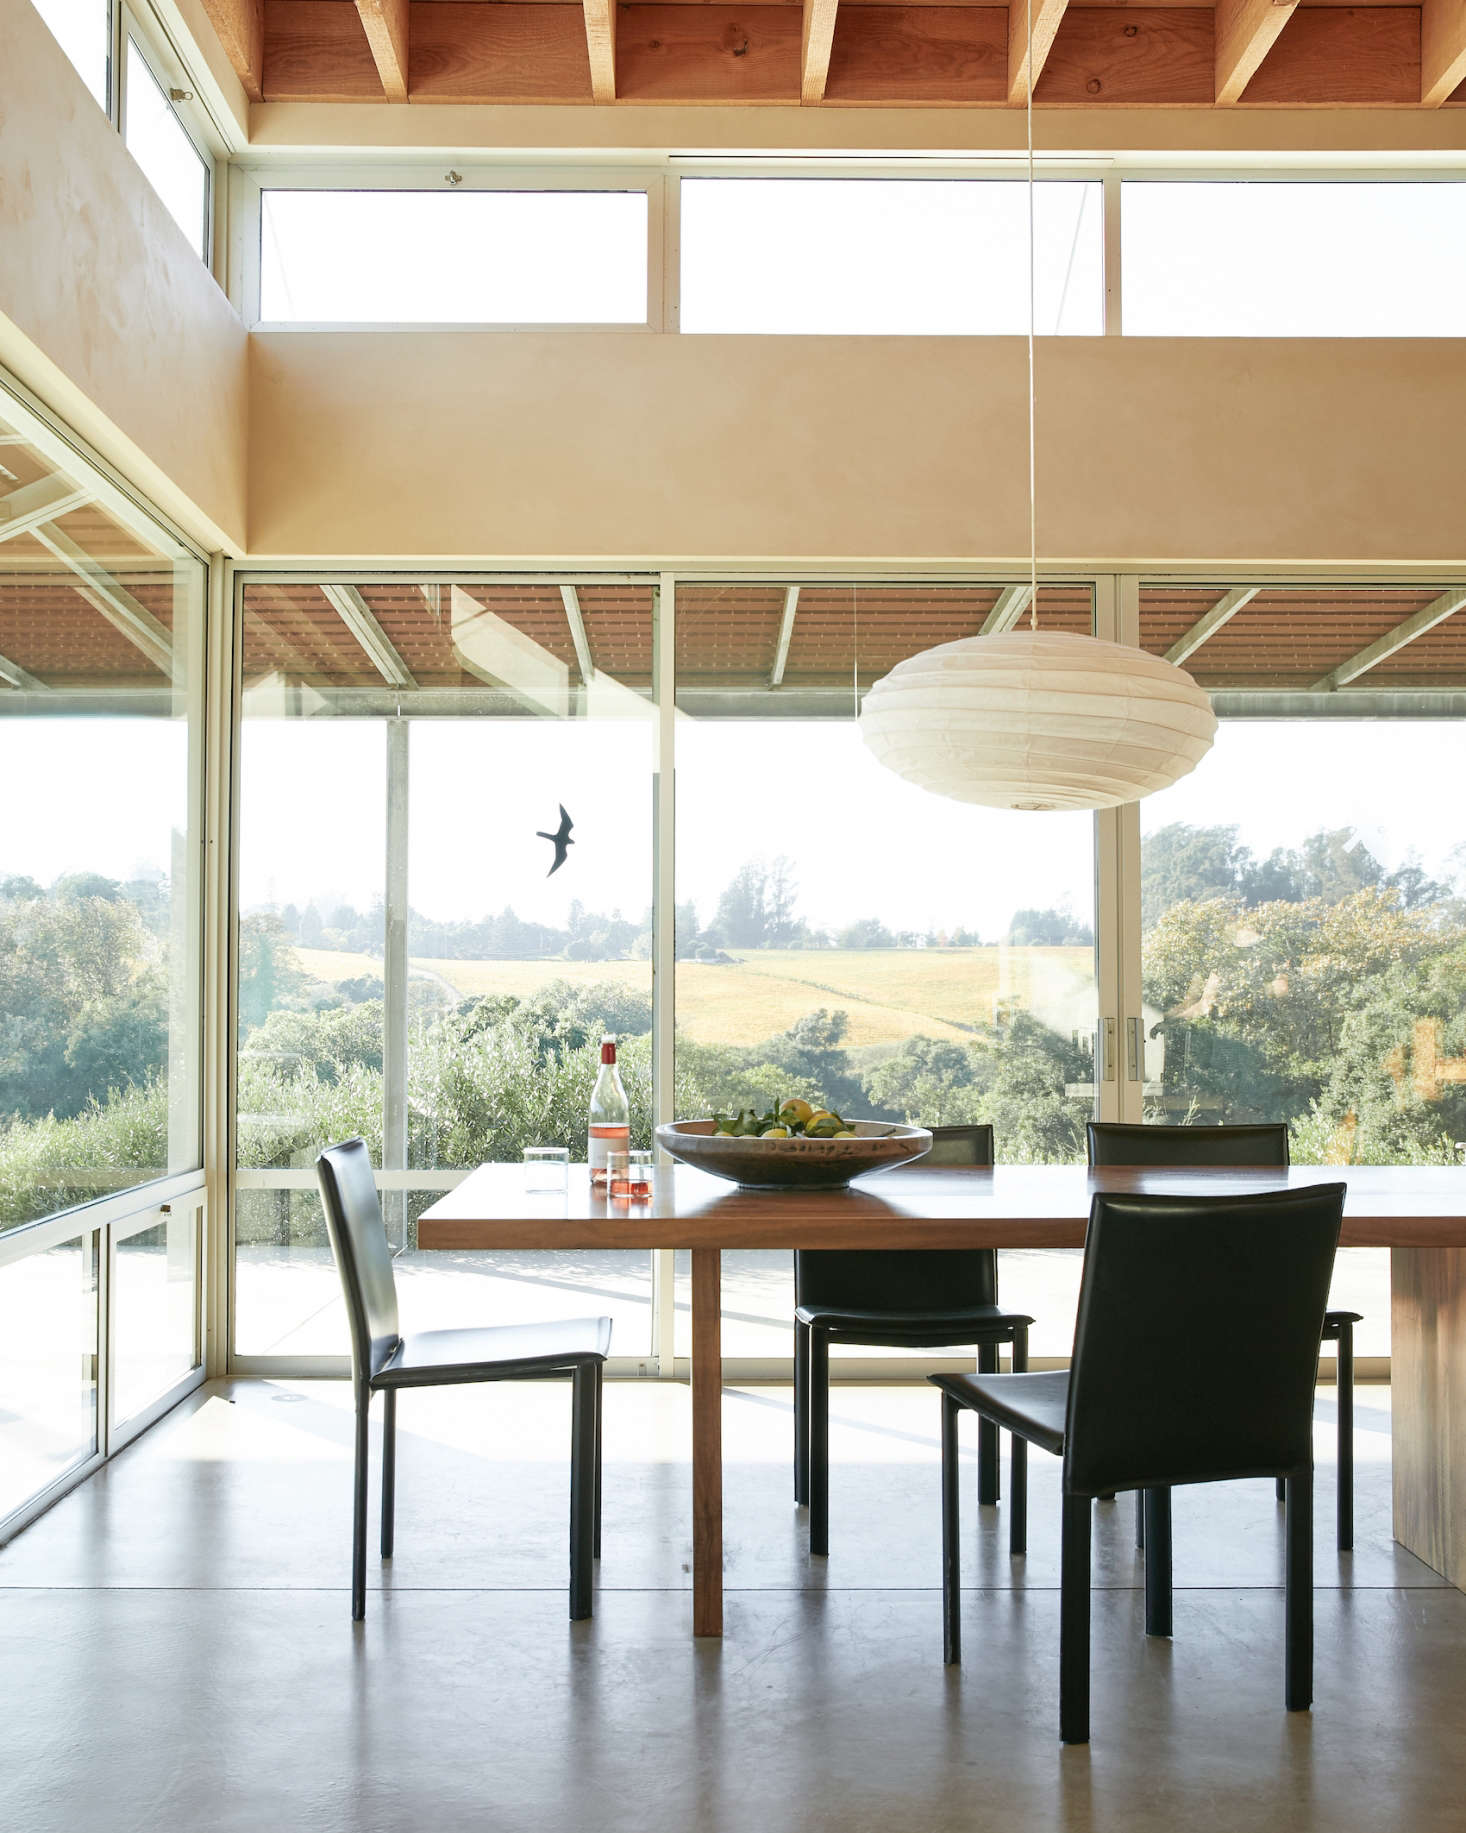 Next to the kitchen is the open-plan dining room, perched on the edge of the upper estate overlooking the vines. The dining table was custom-designed by Anding, fabricated locally using salvaged wood.